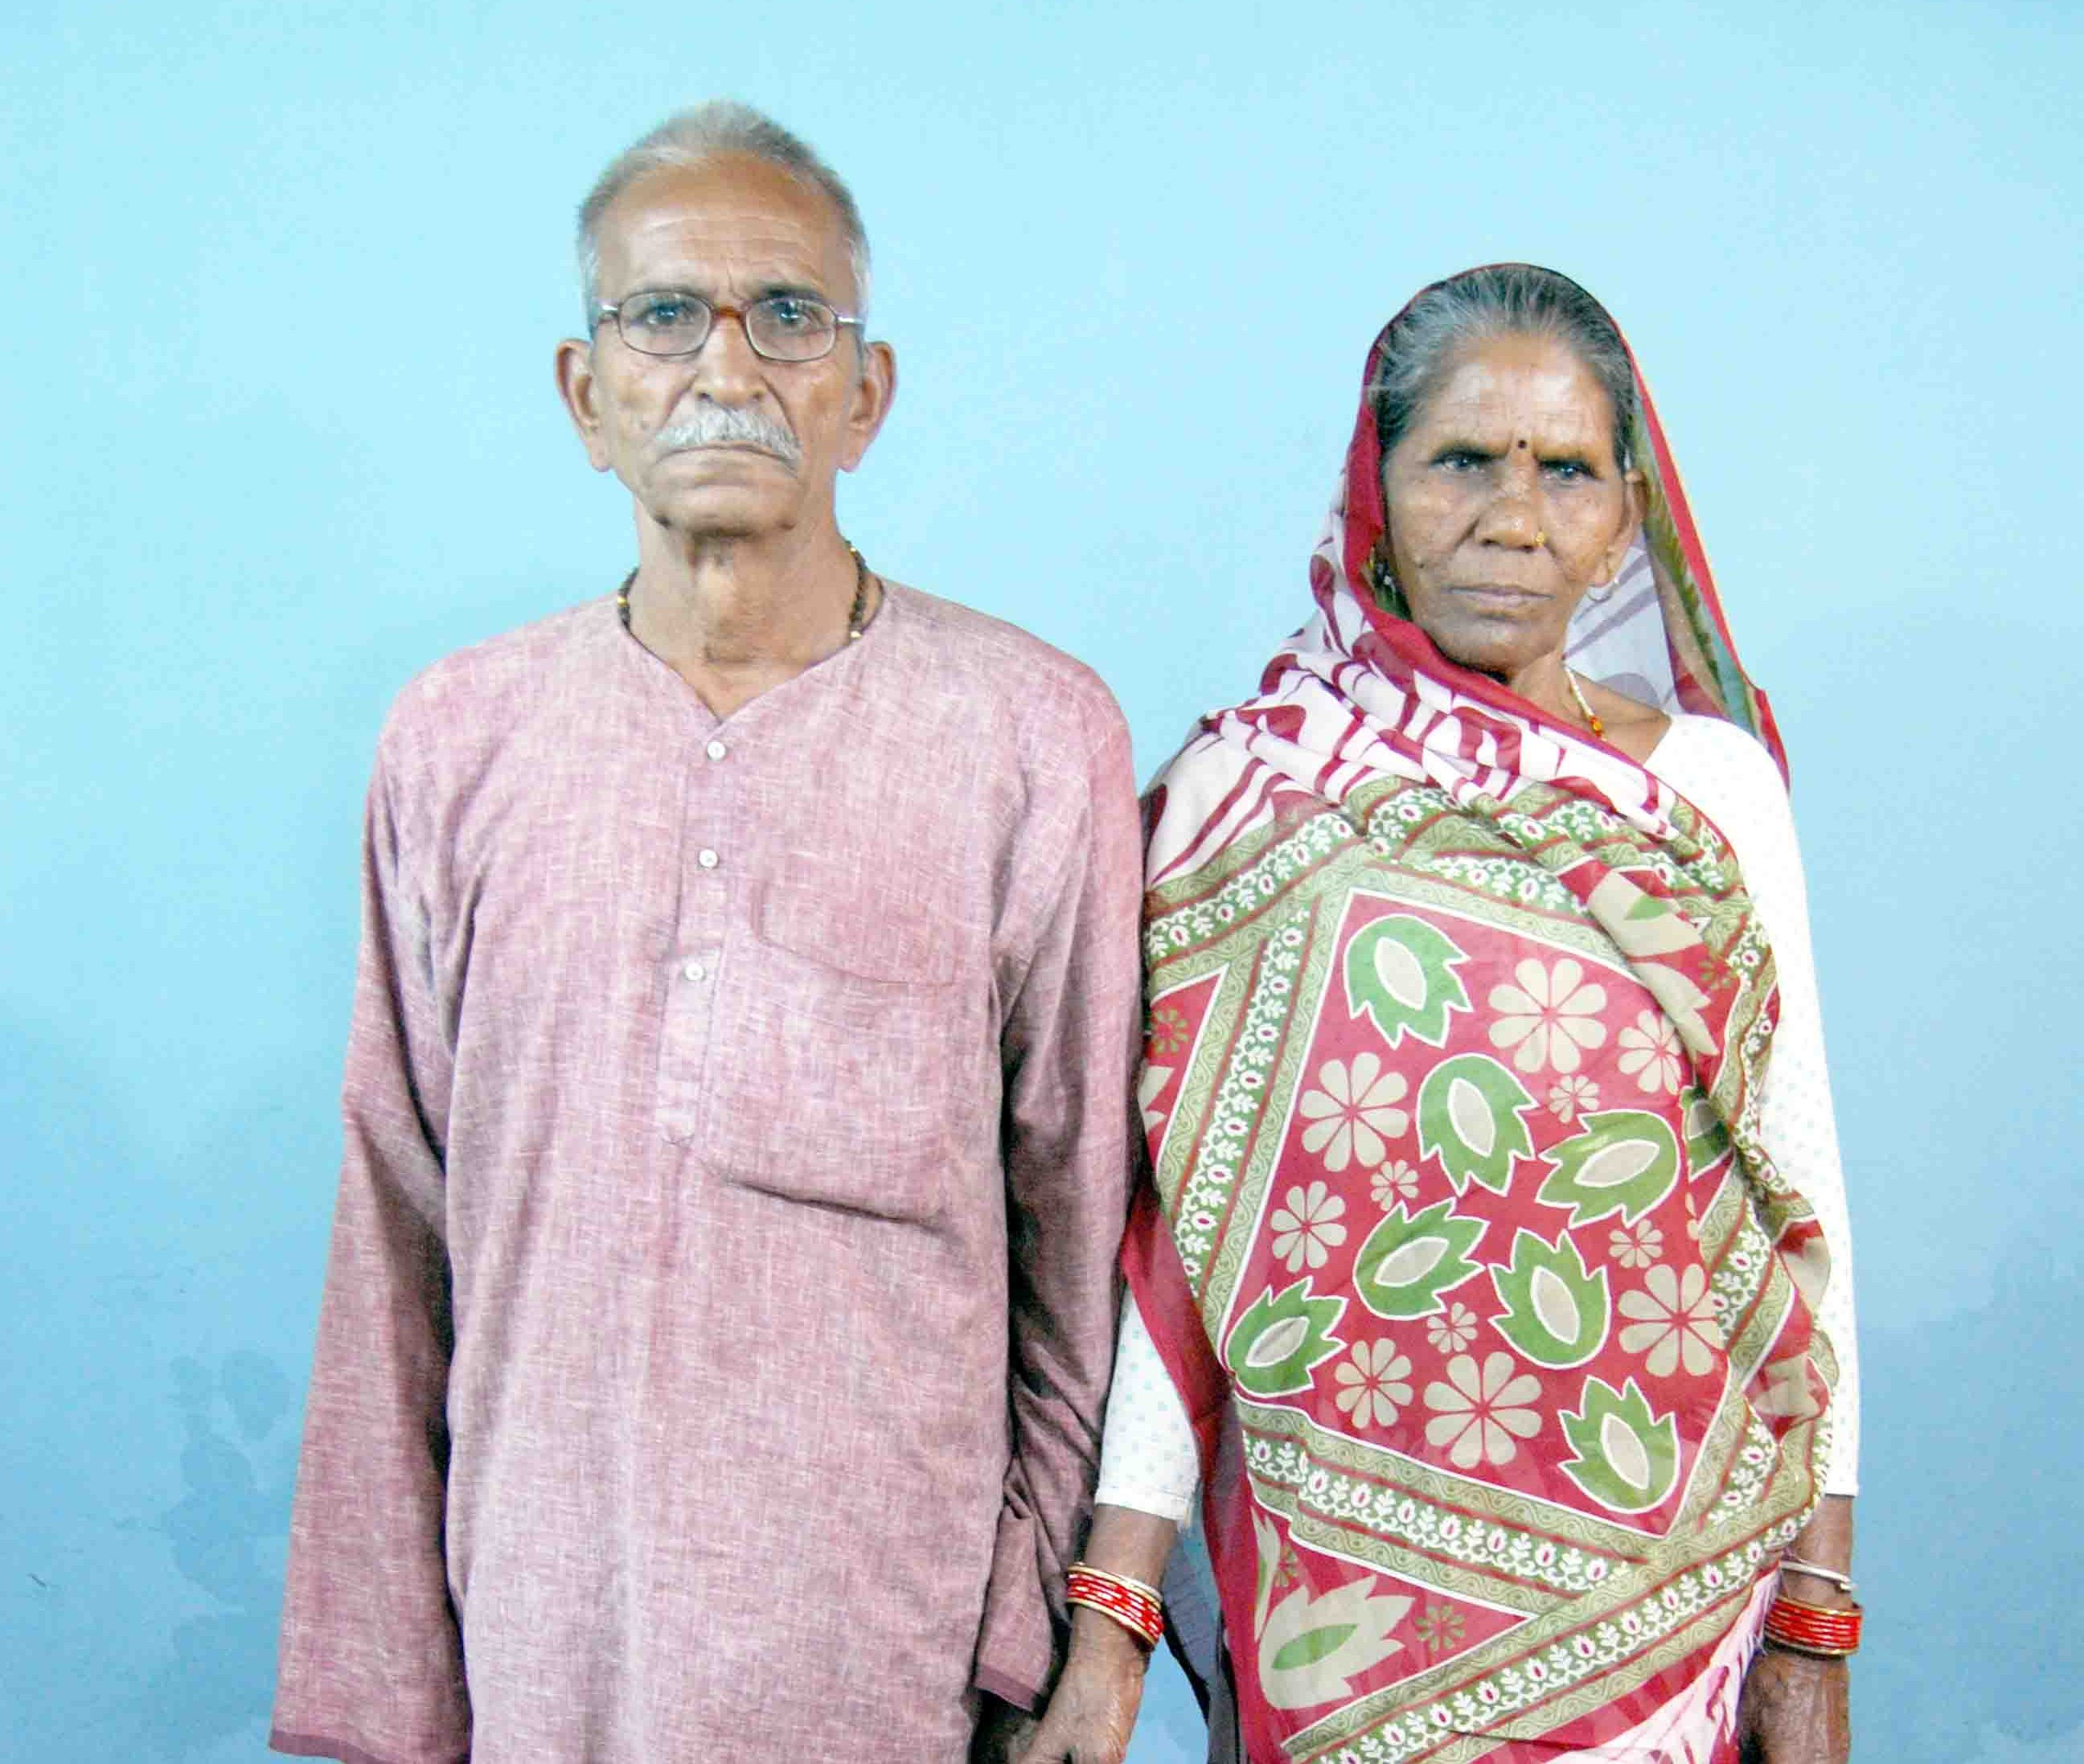 Together, Ramkali and her husband are striving to make their village violence-free.